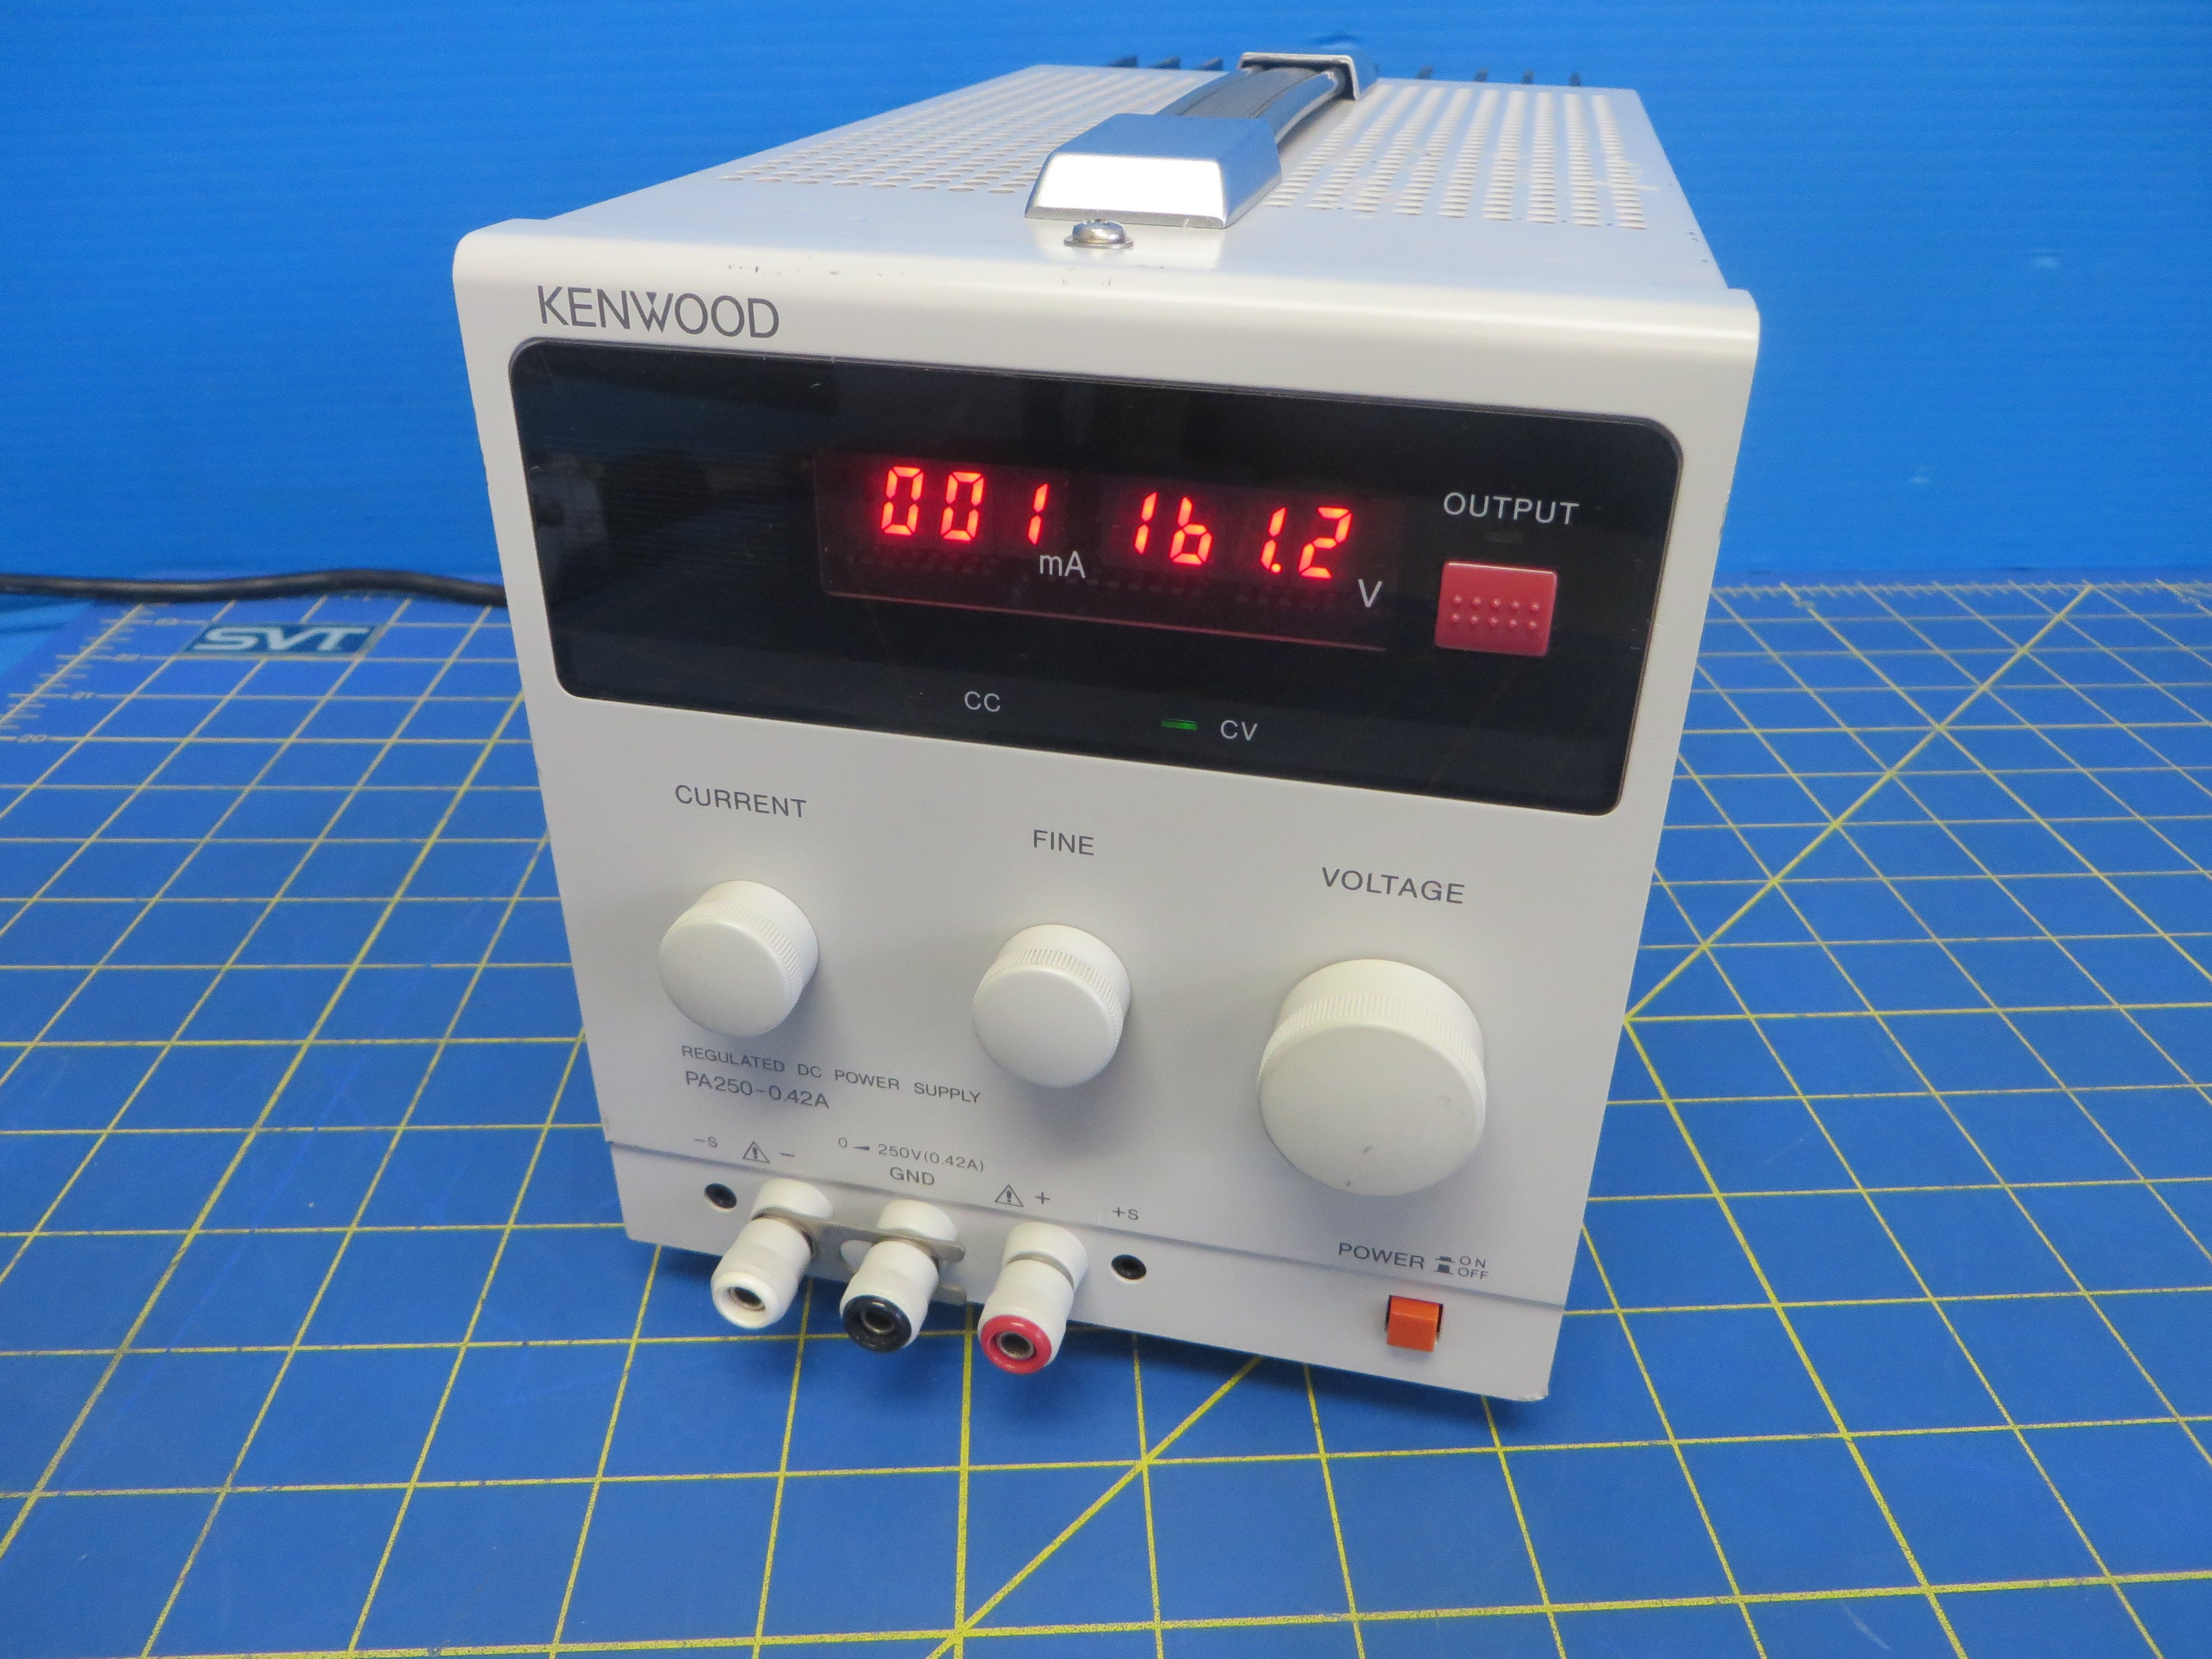 Kenwood PA250-0.42A Adjustable DC Power Supply 0-250VDC 0.42A